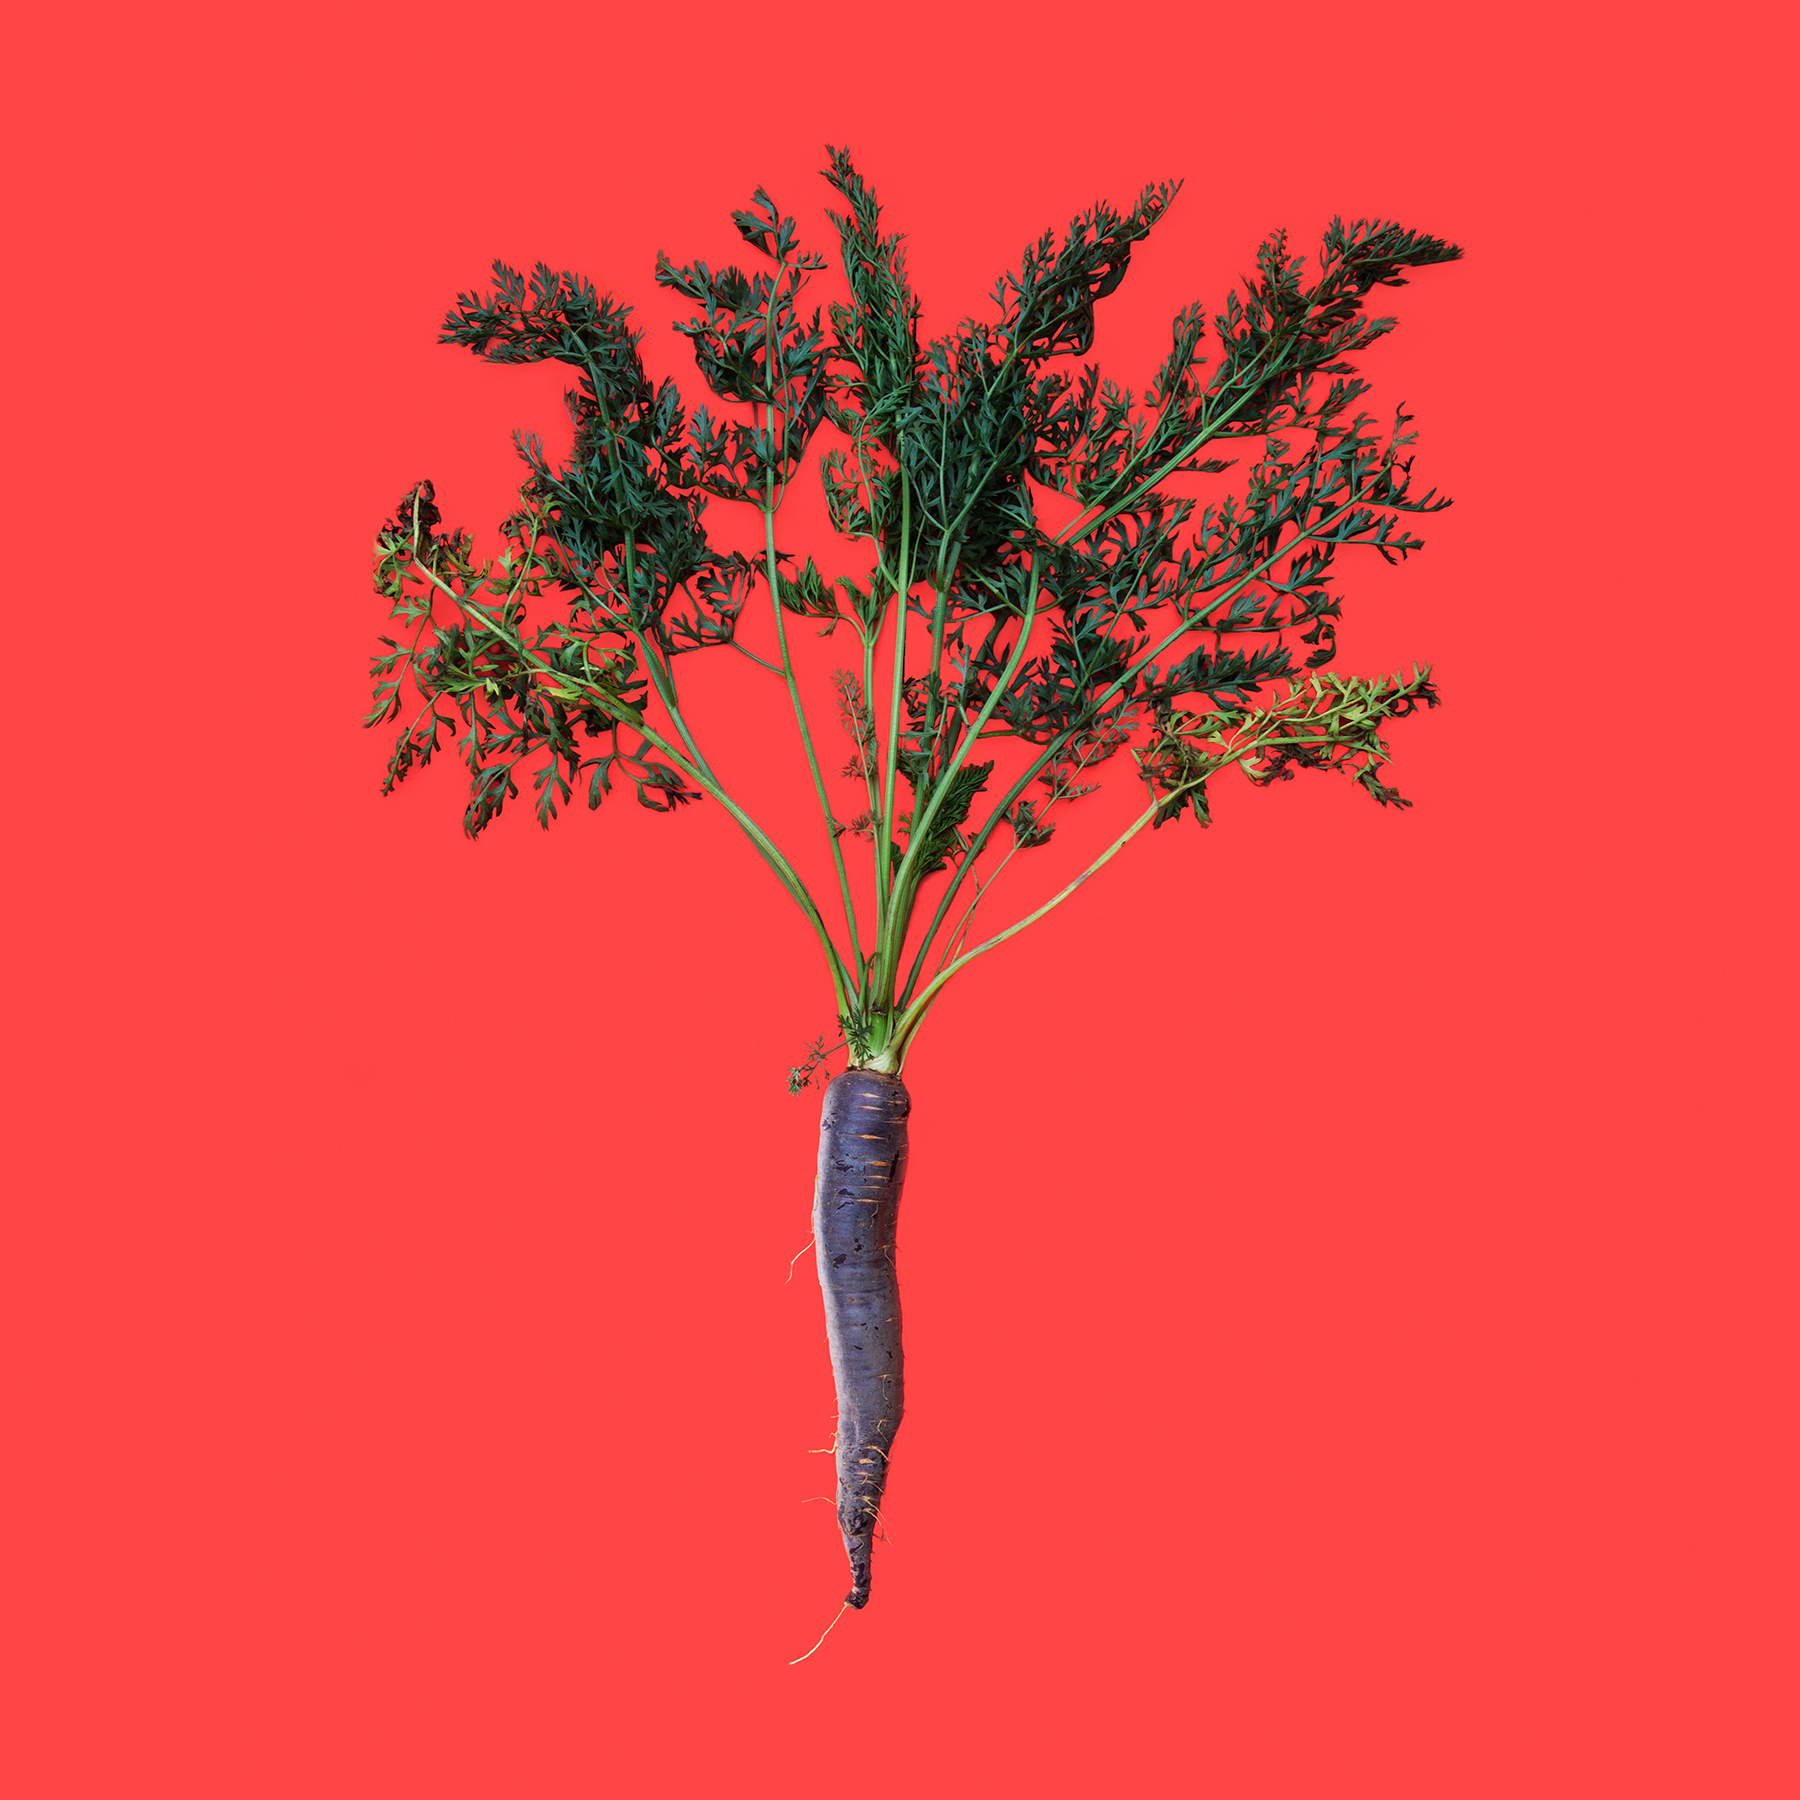 CARROT-PURPLE-DRAGON-ORGANC-RIDGWAY-FARM-ORGANIC-VEGETABLE-©-JONATHAN-R.-BECKERMAN-PHOTOGRAPHY-02.jpg